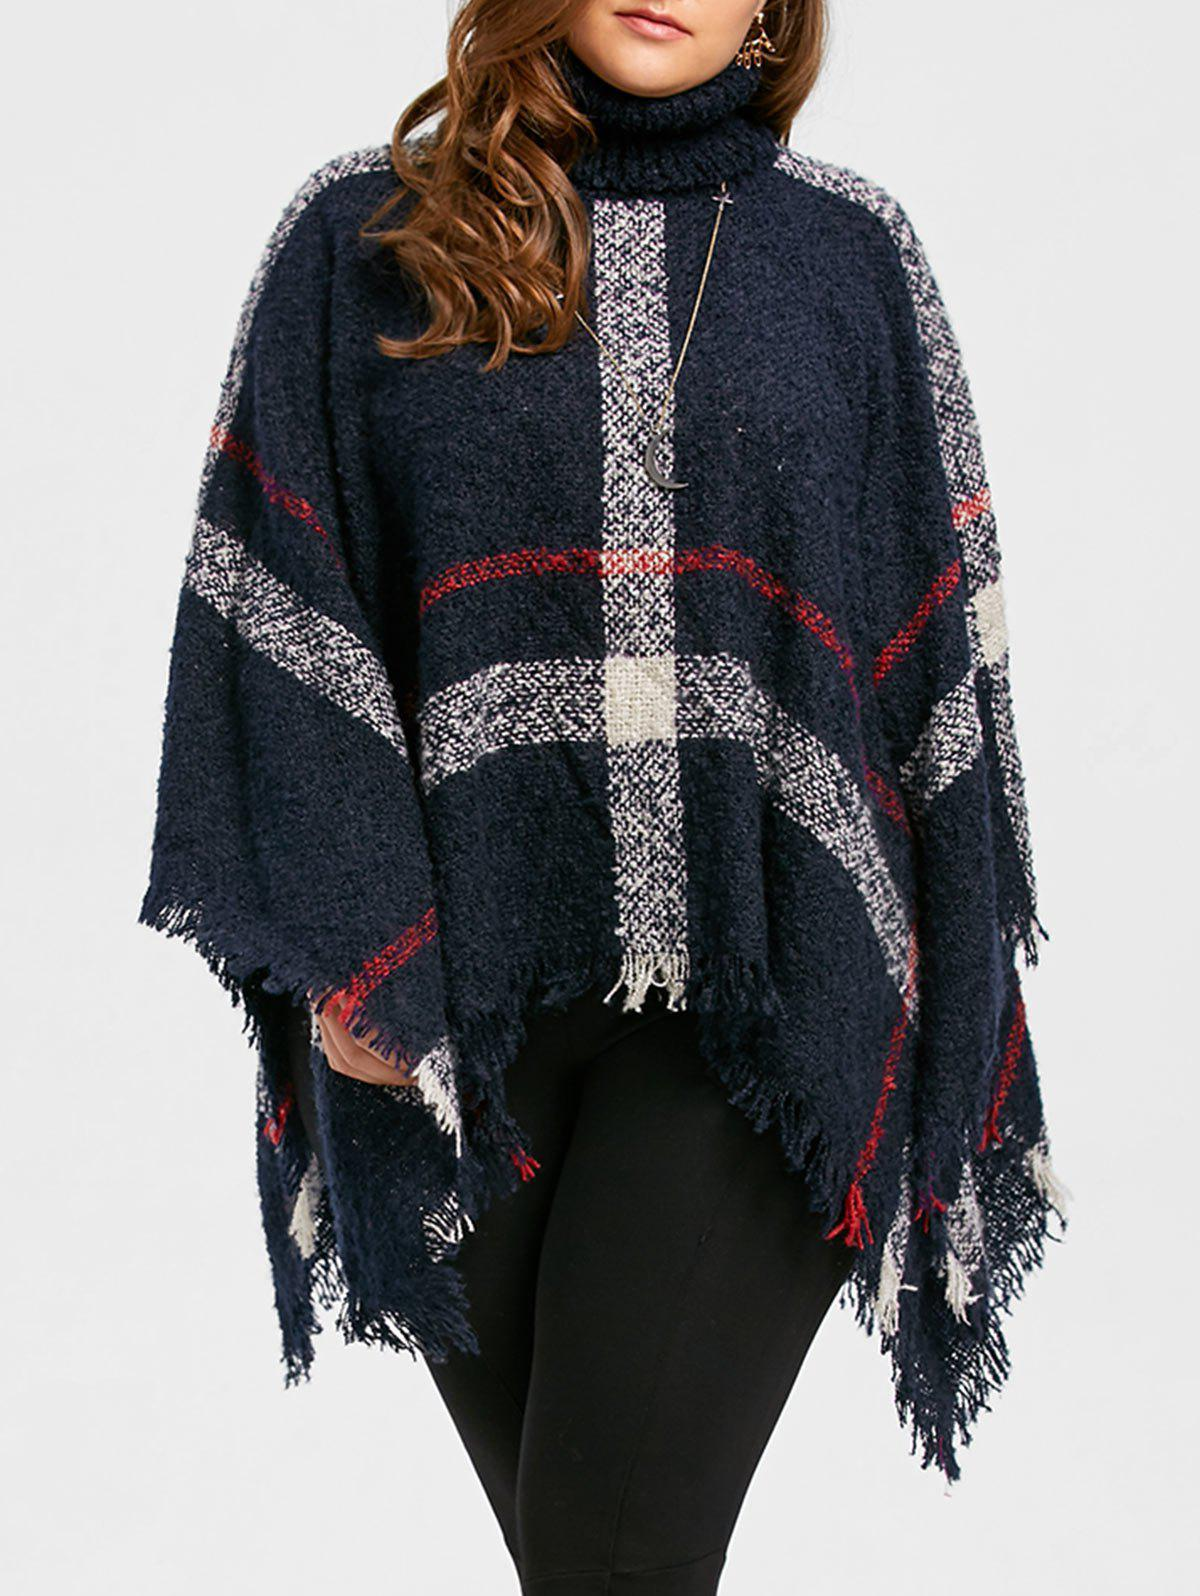 Asymmetric Turtleneck Plus Size Print Cape SweaterWOMEN<br><br>Size: ONE SIZE; Color: BLUE; Type: Pullovers; Material: Polyester,Spandex; Sleeve Length: Full; Collar: Turtleneck; Style: Fashion; Season: Fall,Winter; Pattern Type: Striped; Weight: 0.5800kg; Package Contents: 1 x Sweater;